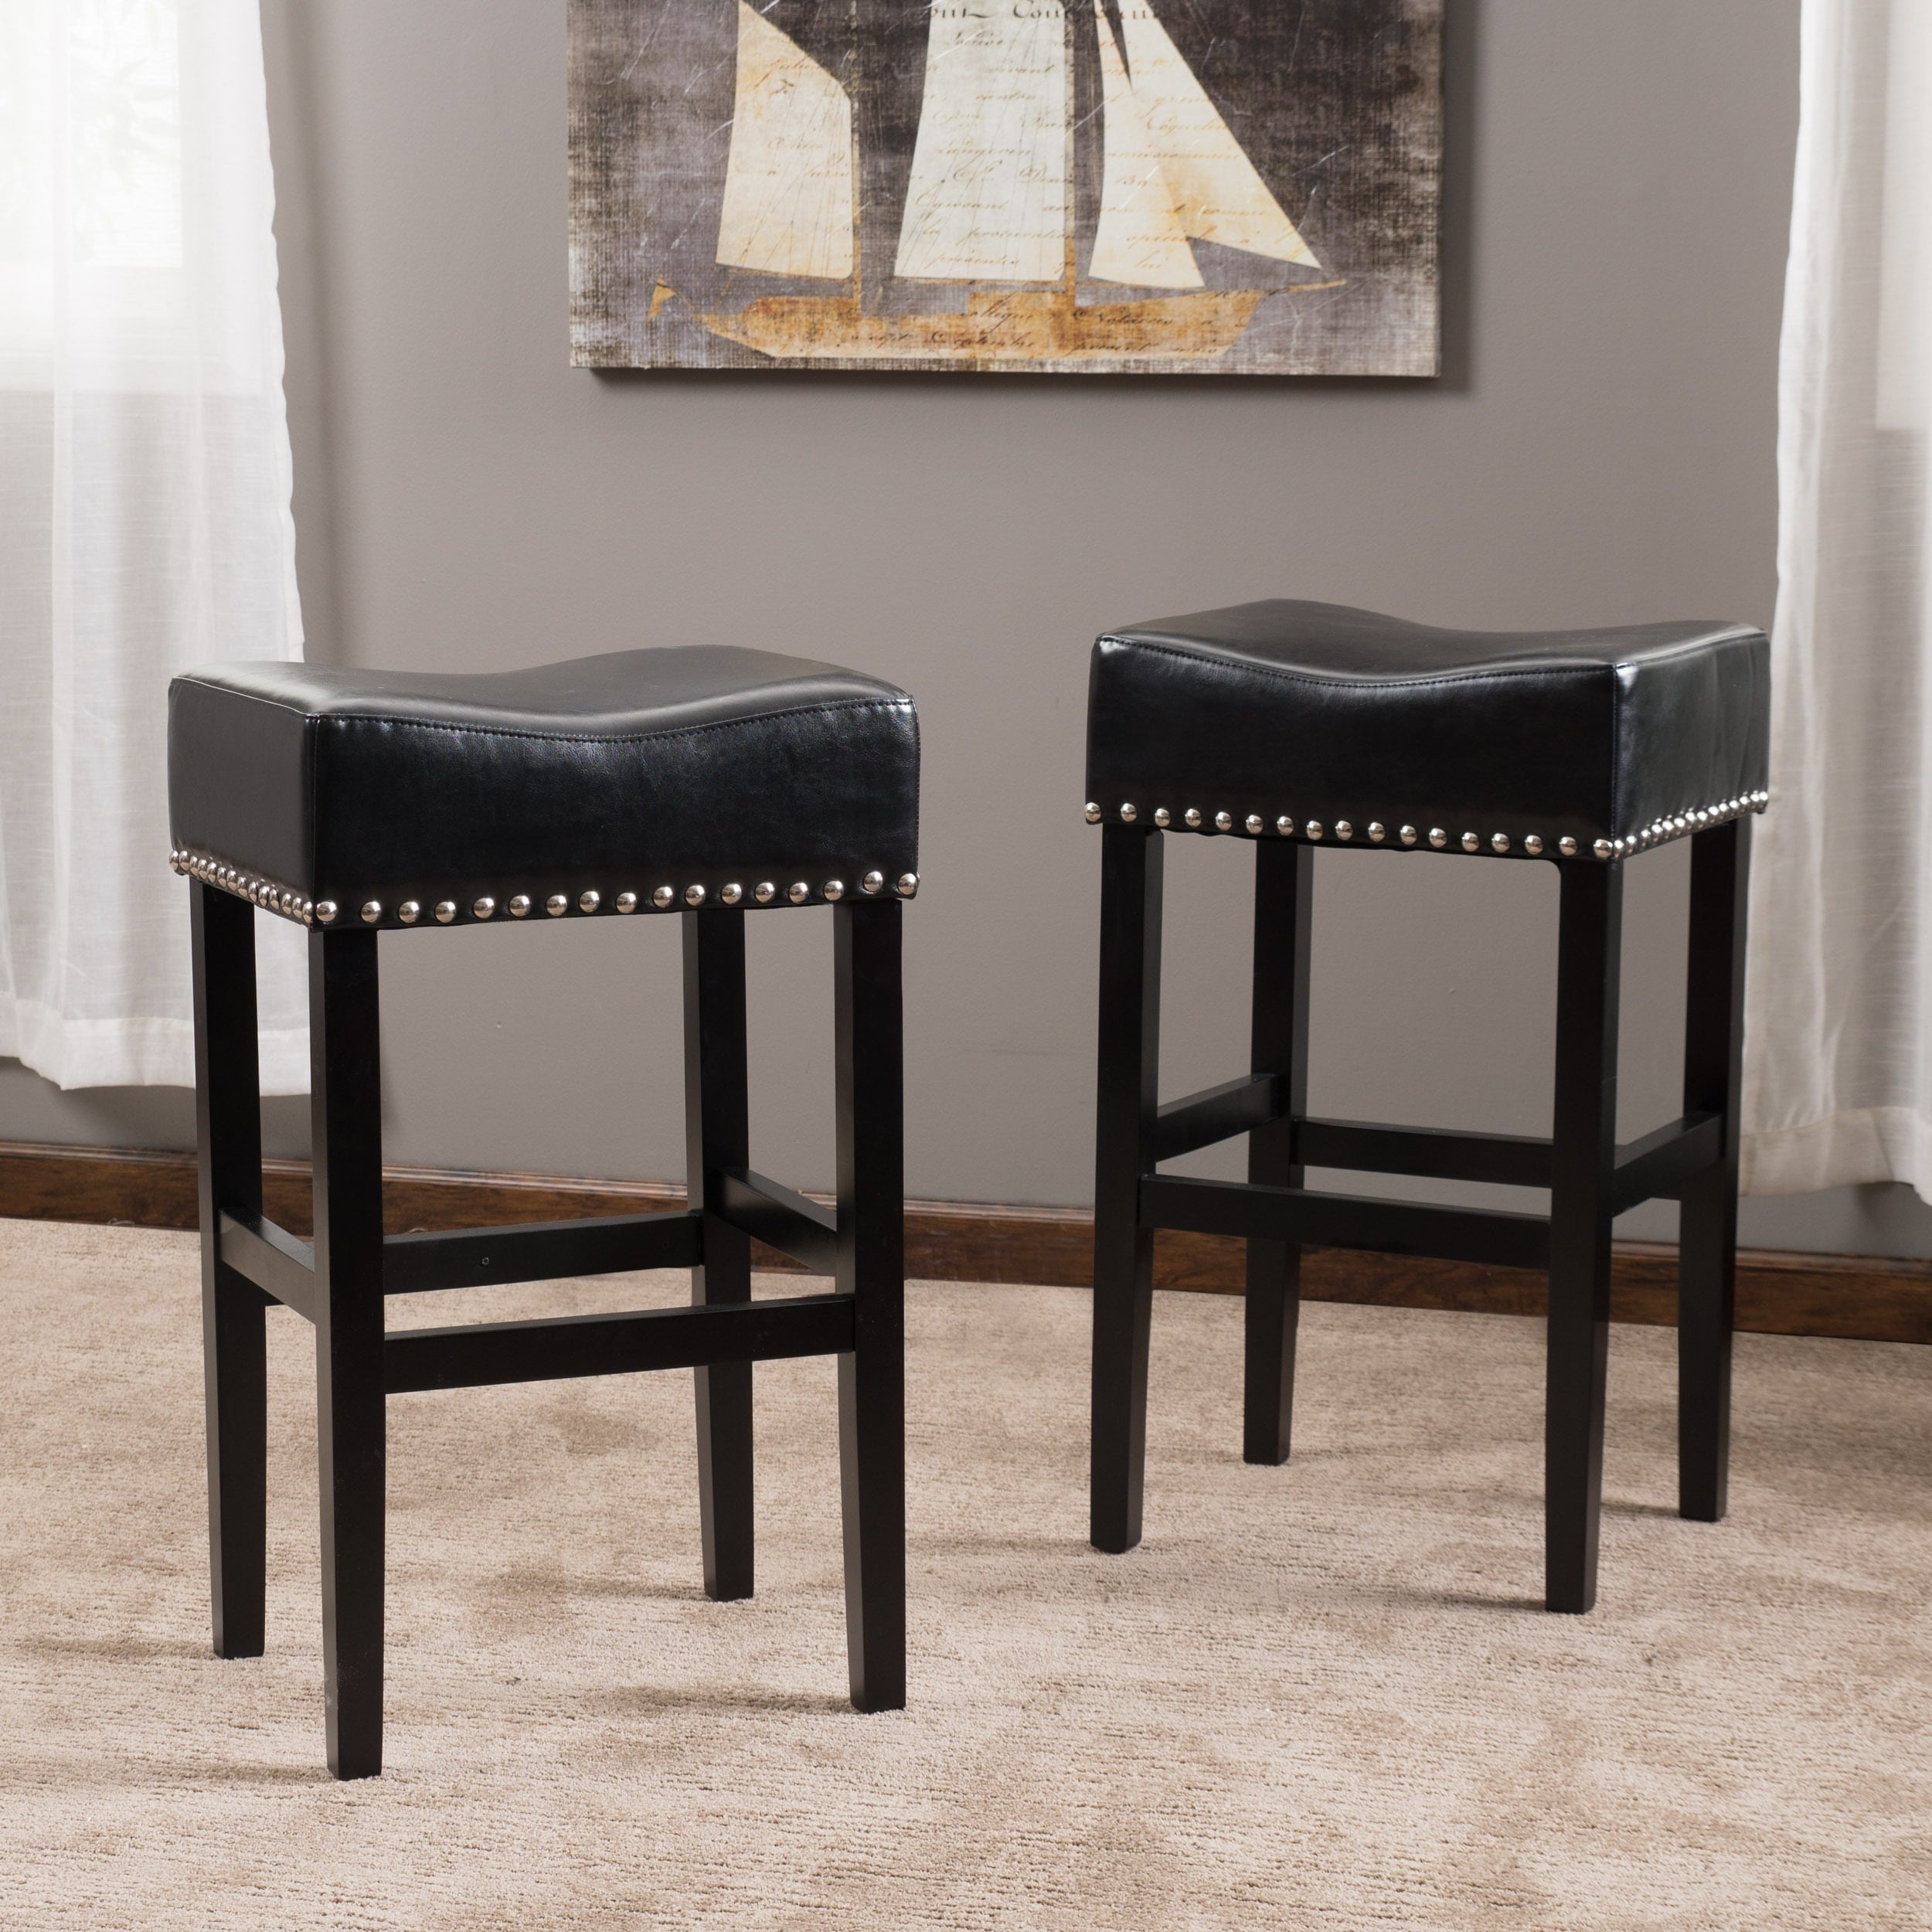 Enjoyable Home Garden Set Of 2 Black Leather Backless Counter Stools Uwap Interior Chair Design Uwaporg